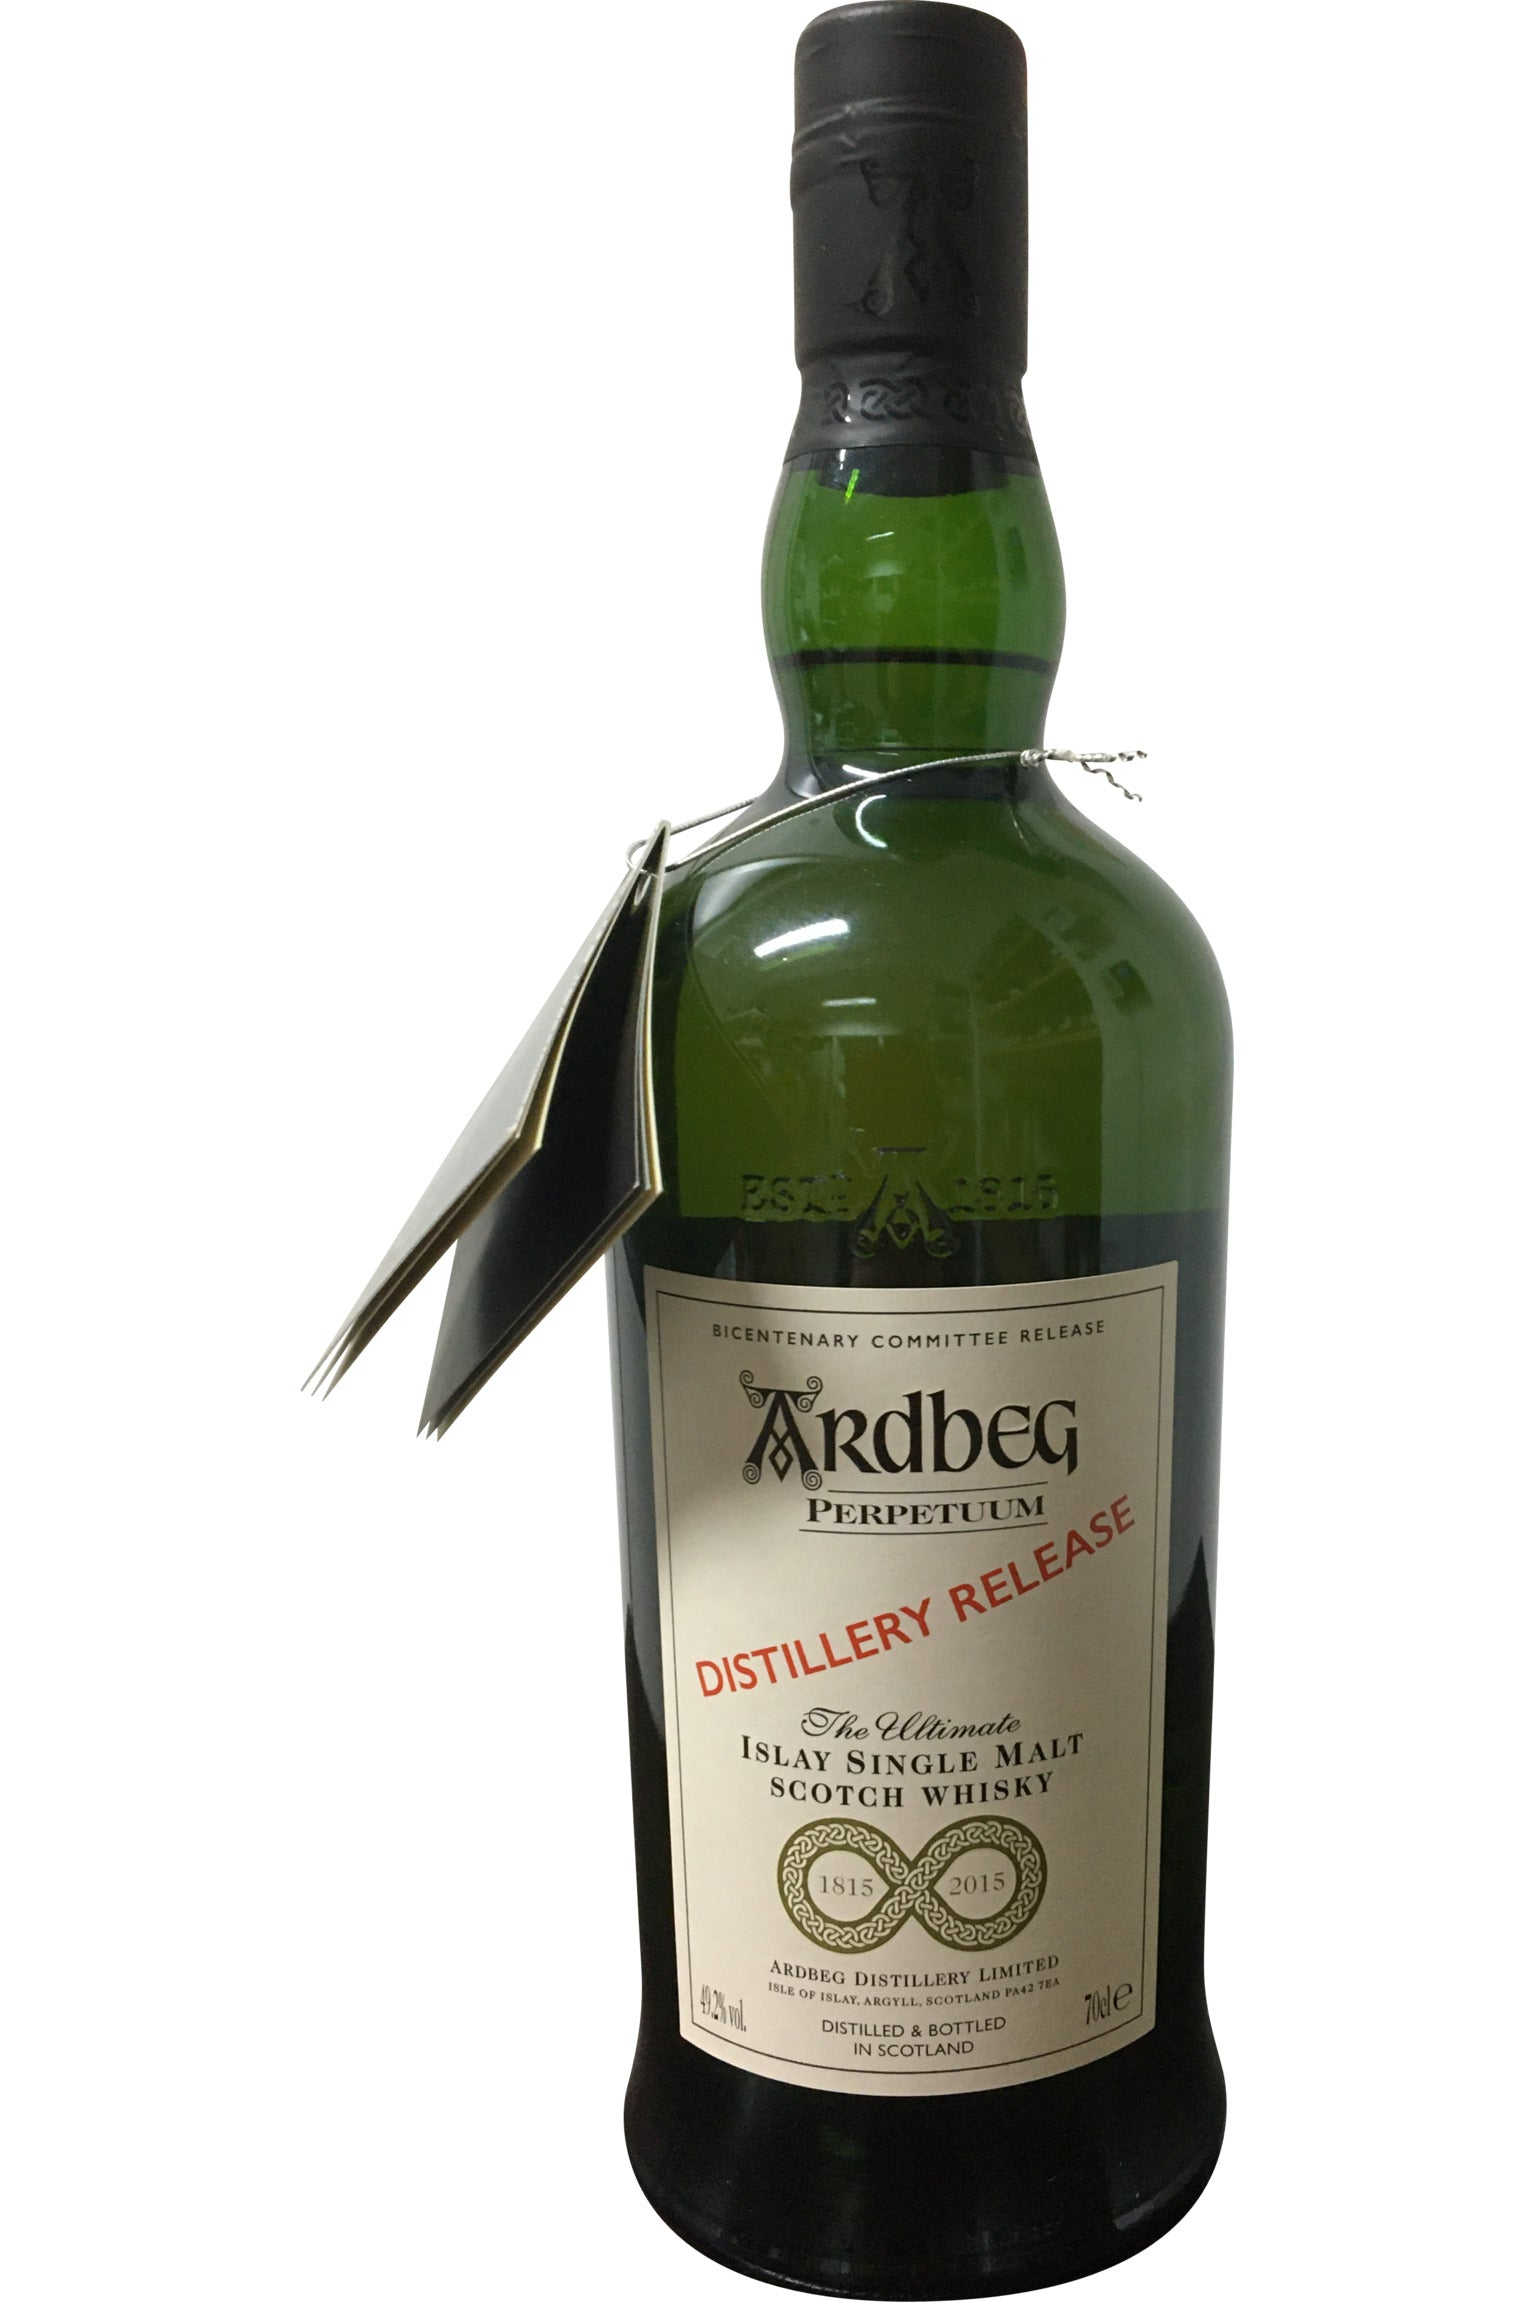 Ardbeg Perpetuum Committee Distillery Release Whisky | 49.2% 700ml